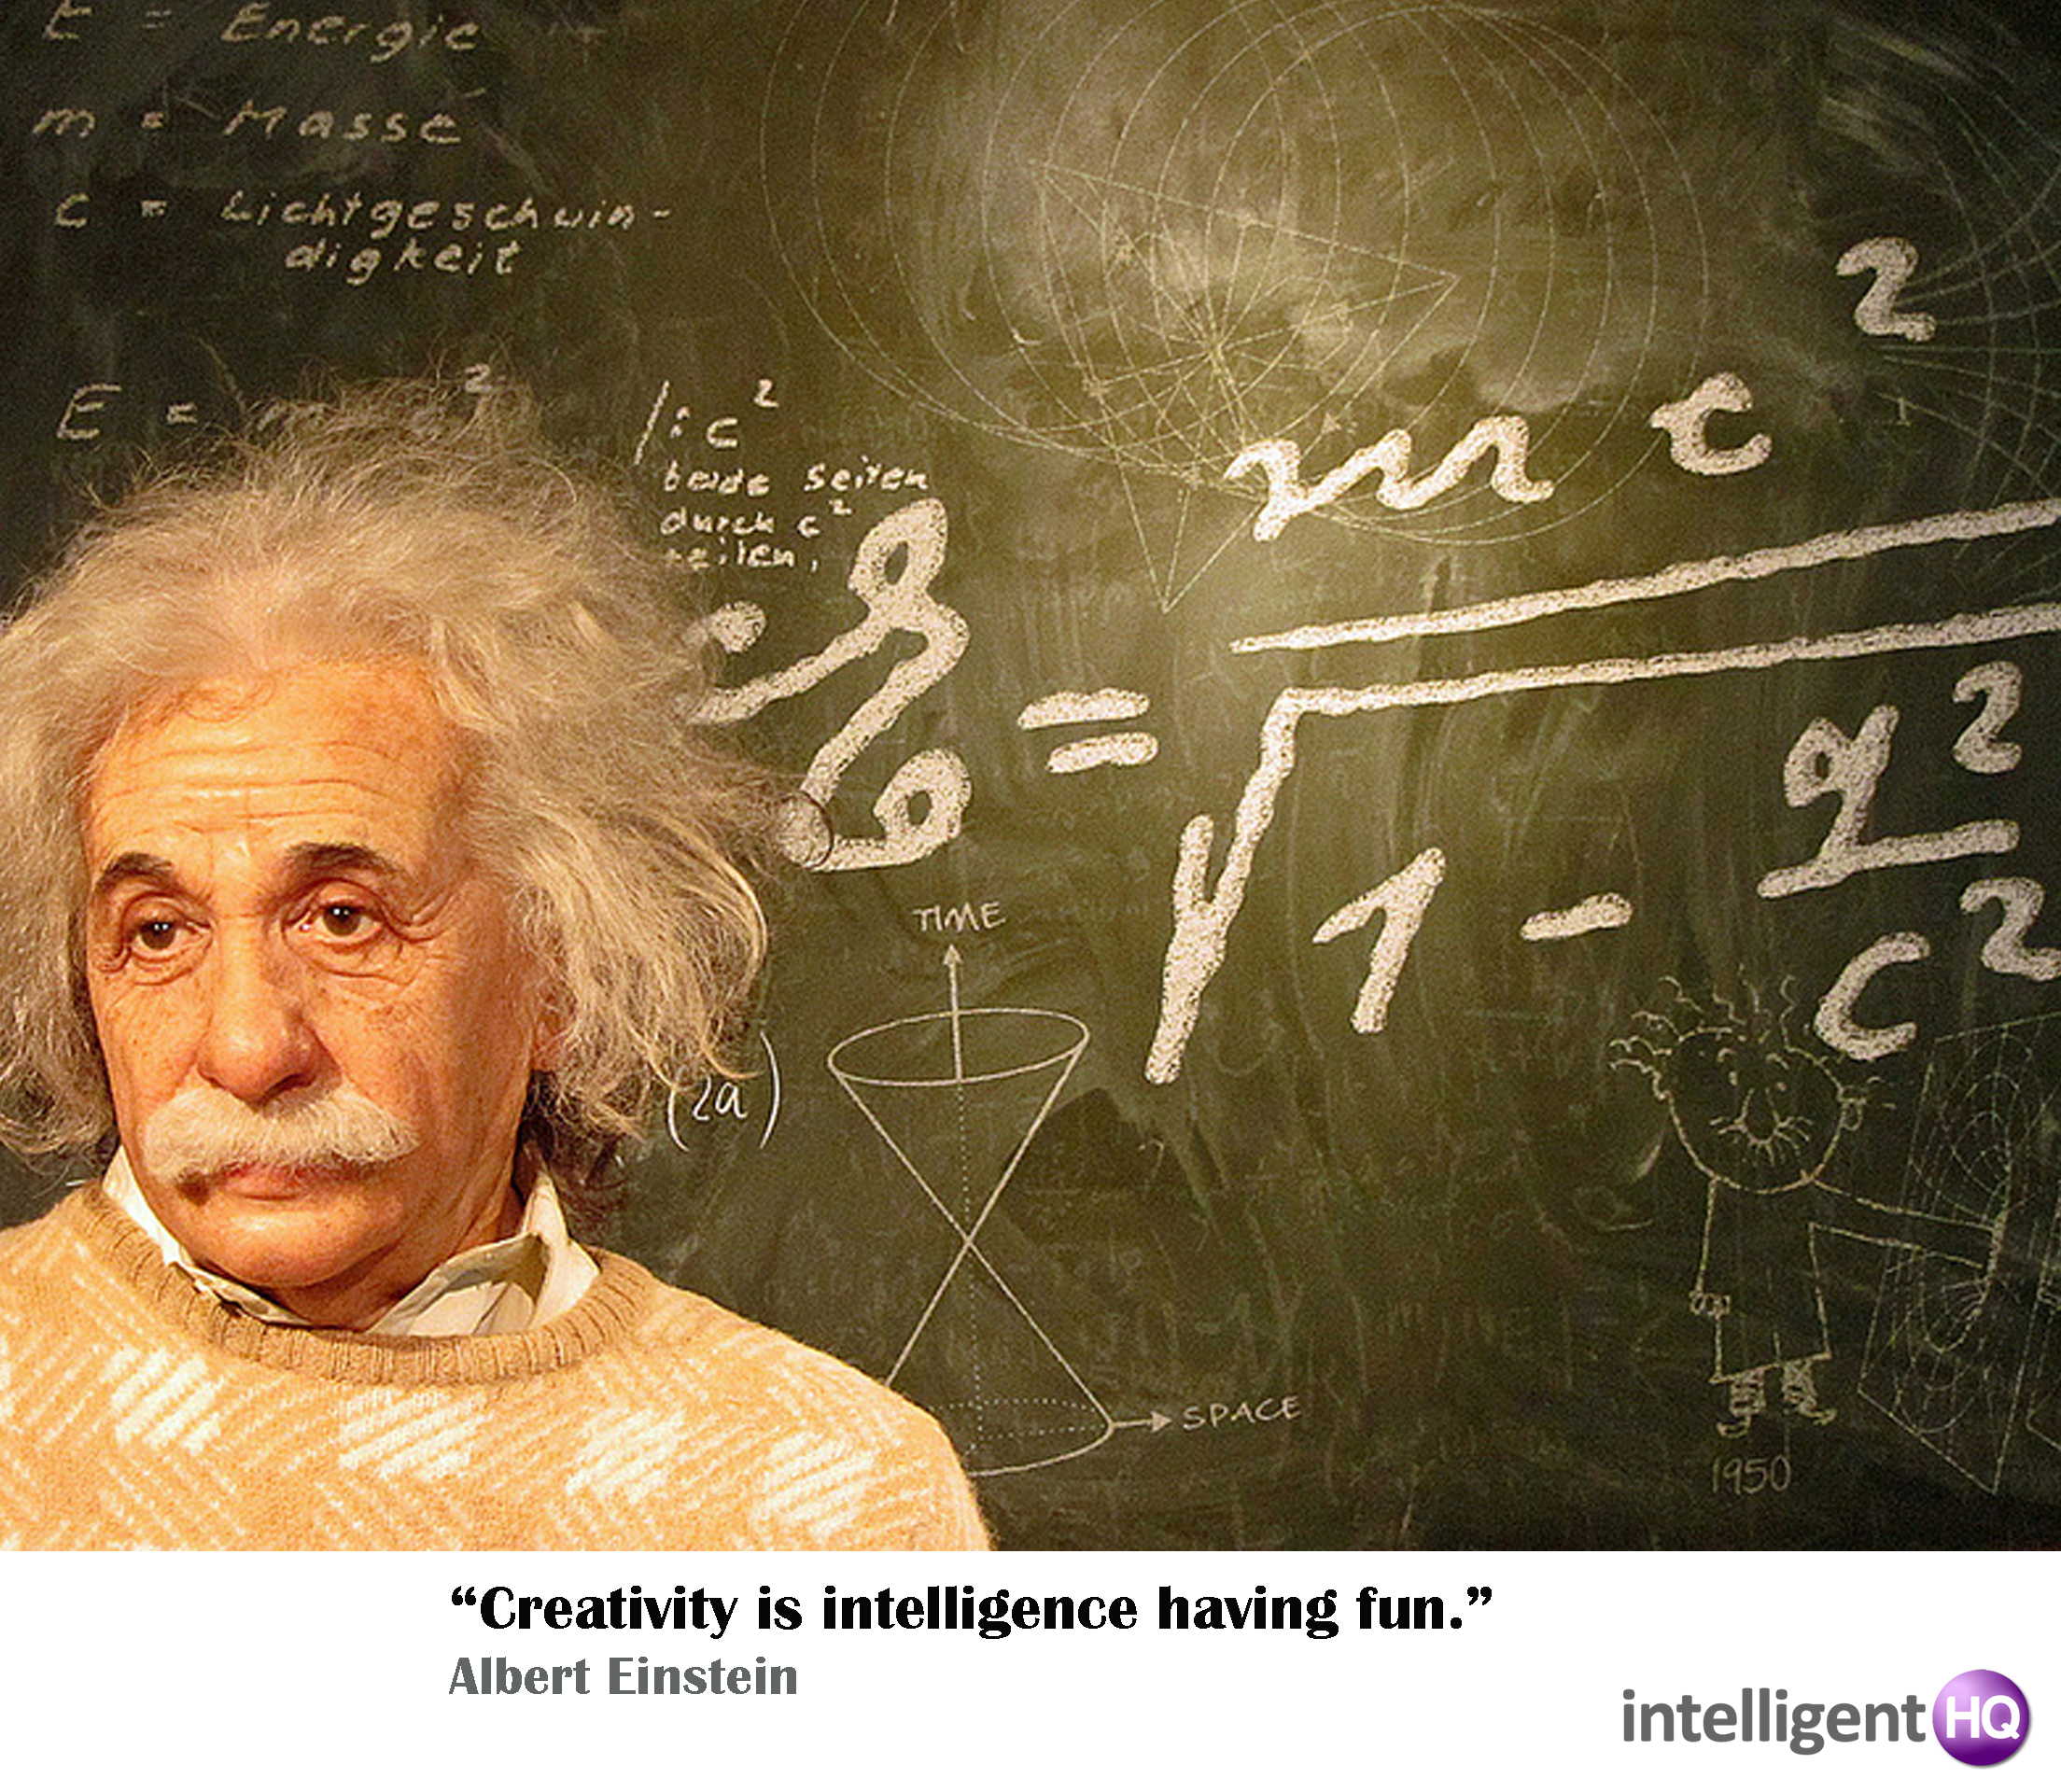 Albert Einstein Quote Intelligenthq